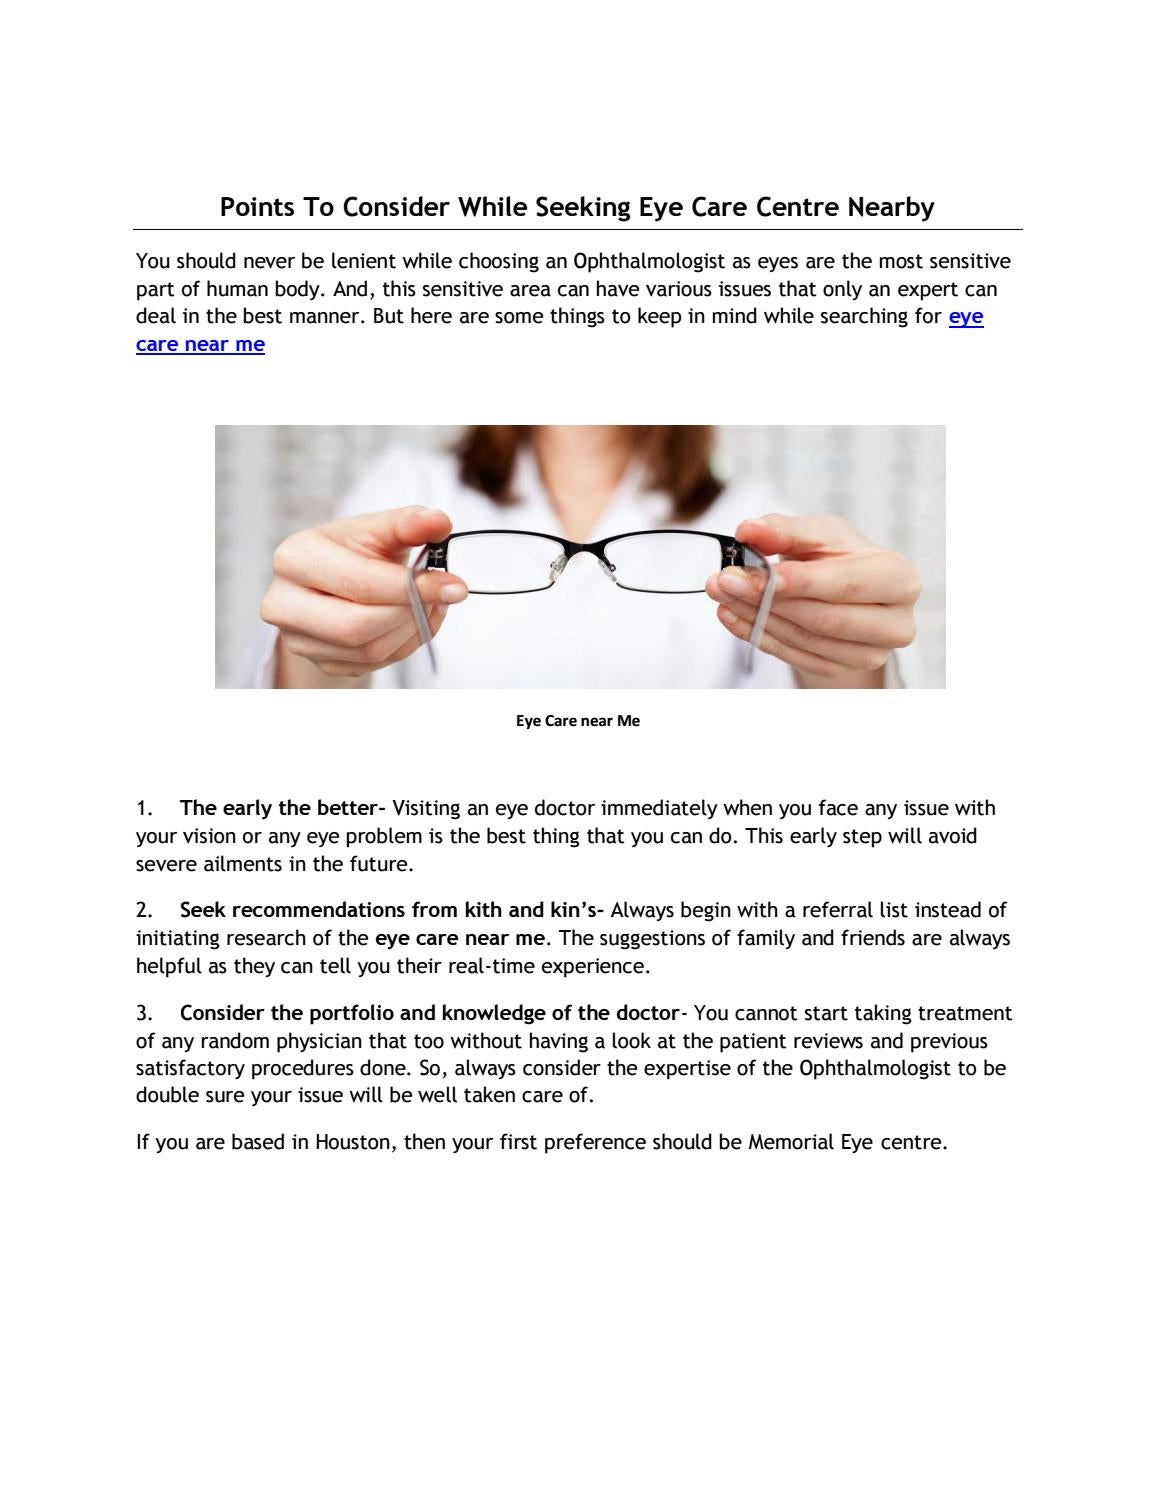 Points To Consider While Seeking Eye Care Centre Nearby by